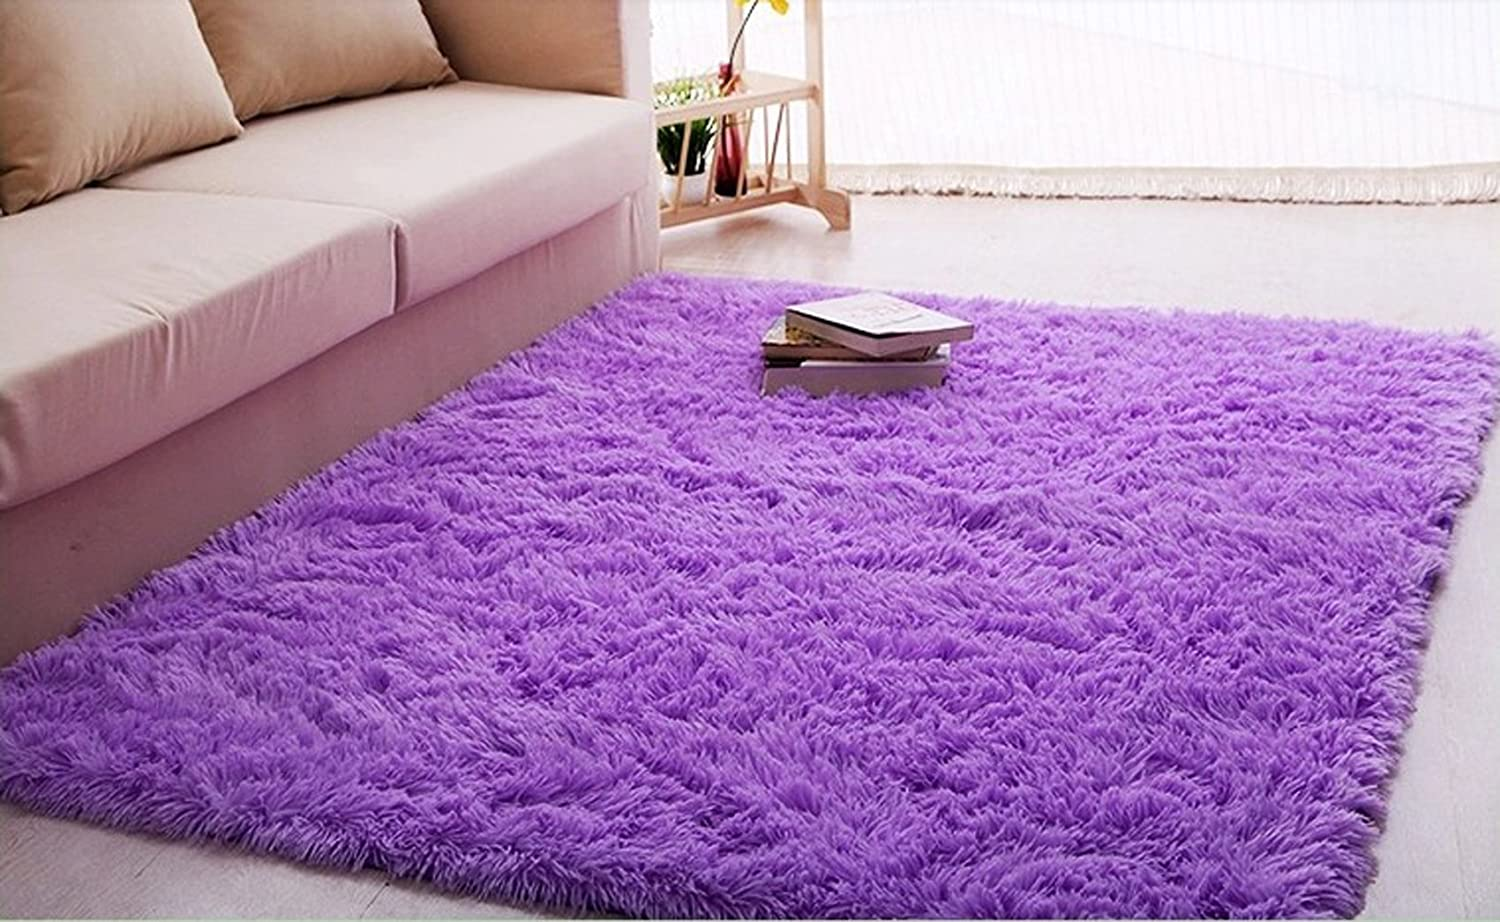 videos and runner decorating room gold paint to color cabinets shark cat of colors purple grey kitchen choose wonderful bedroom living rug white scheme livingroom basics decor rugs the found ideas